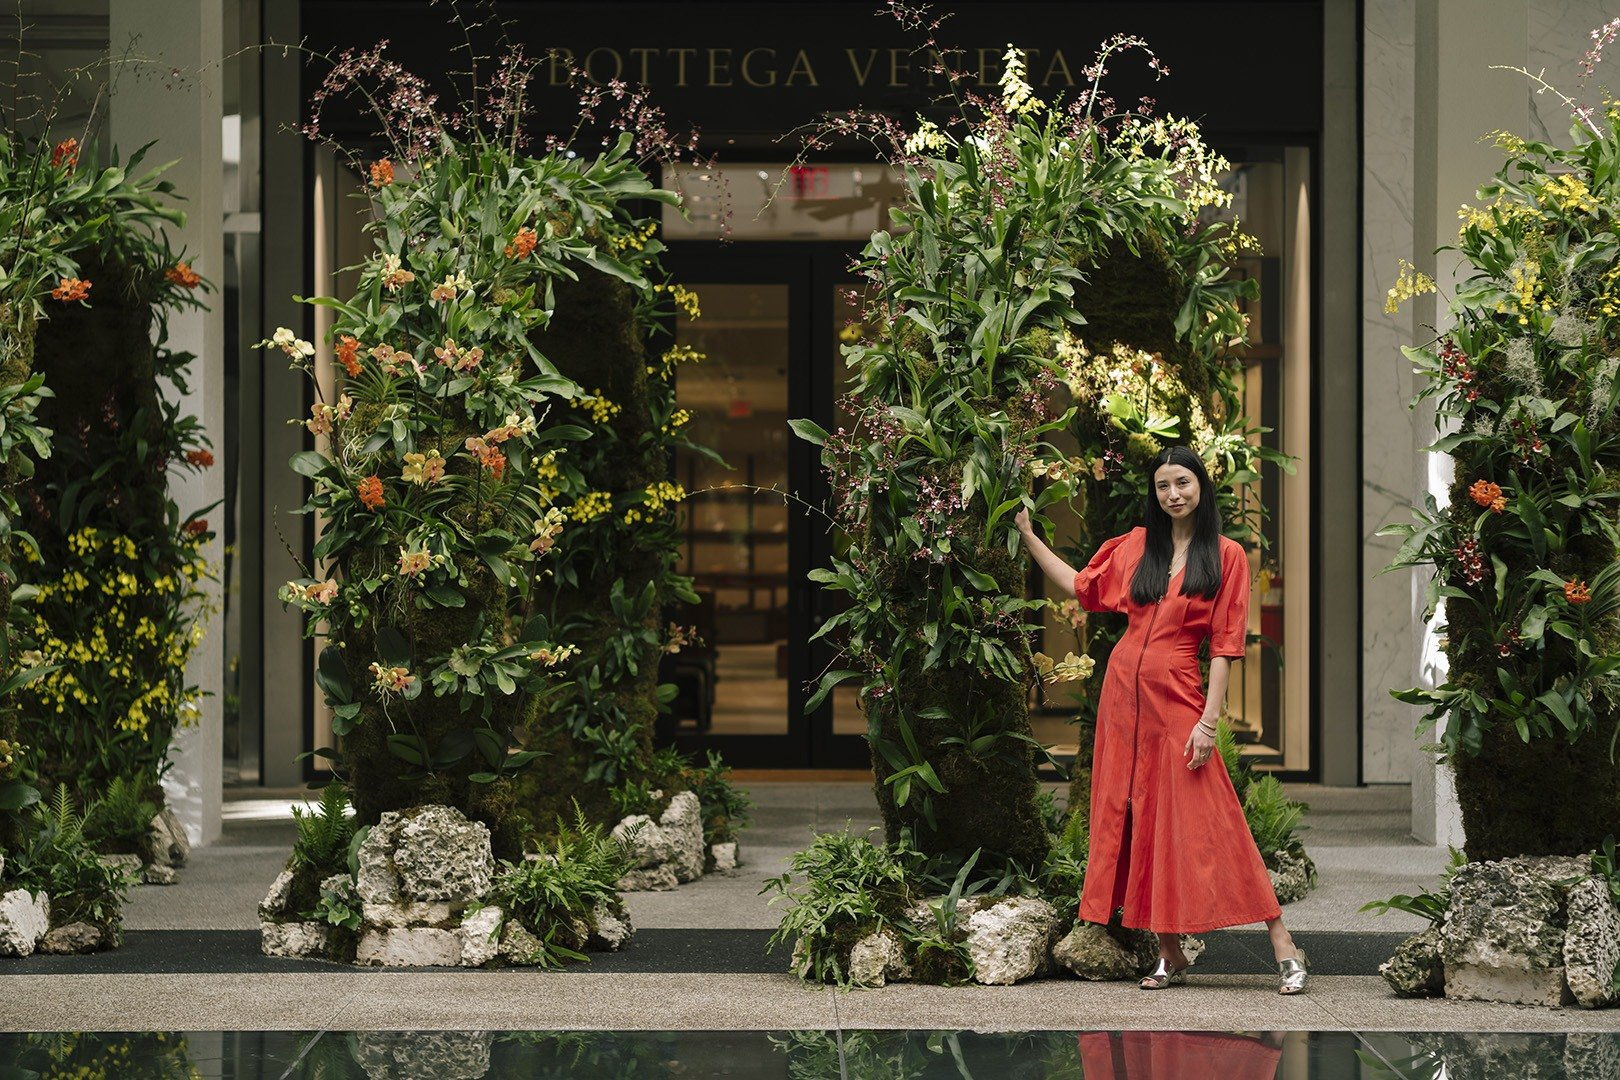 'Moongates' Landscape Art Installation at Bal Harbour Shops by Lily Kwong. Photograph by Gesi Schilling